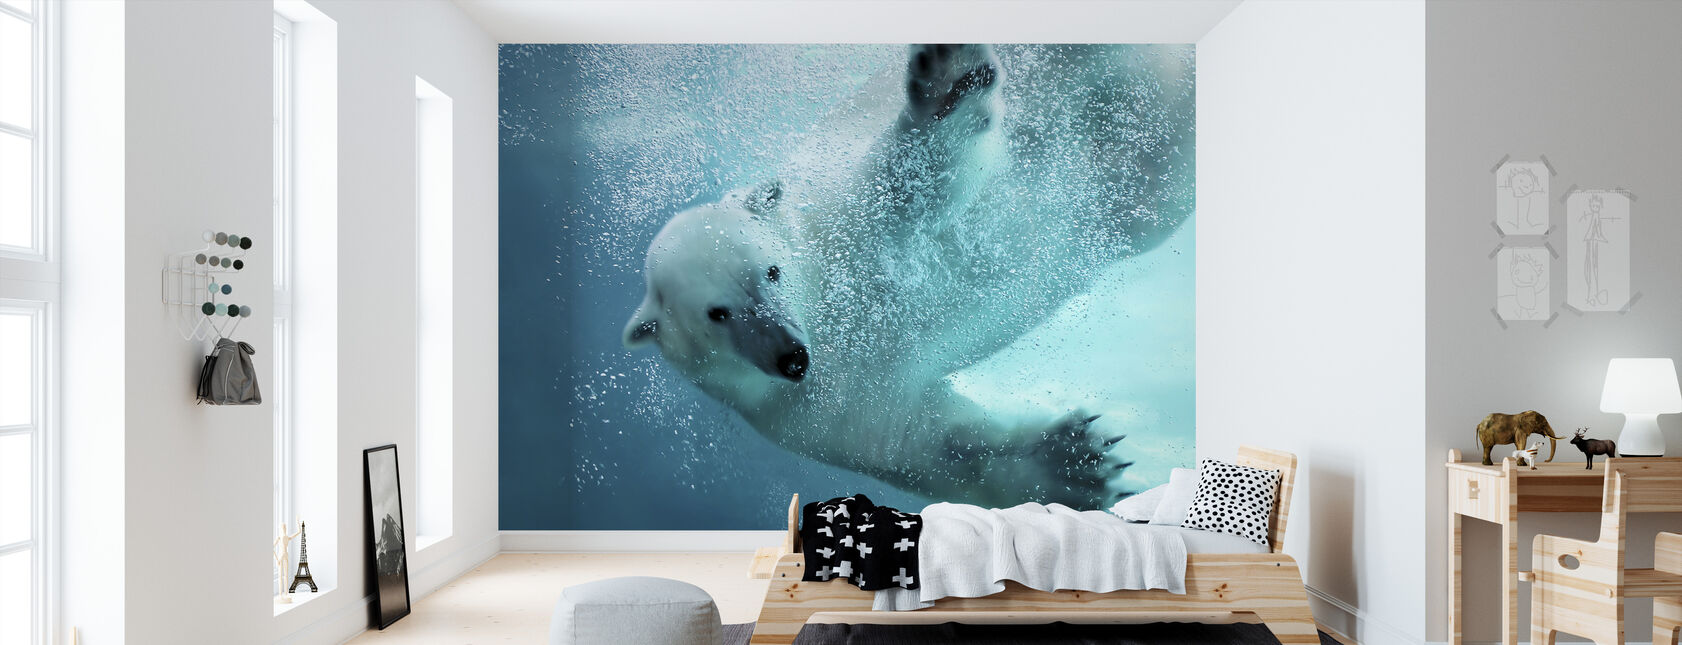 Underwater Polar Bear - Wallpaper - Kids Room